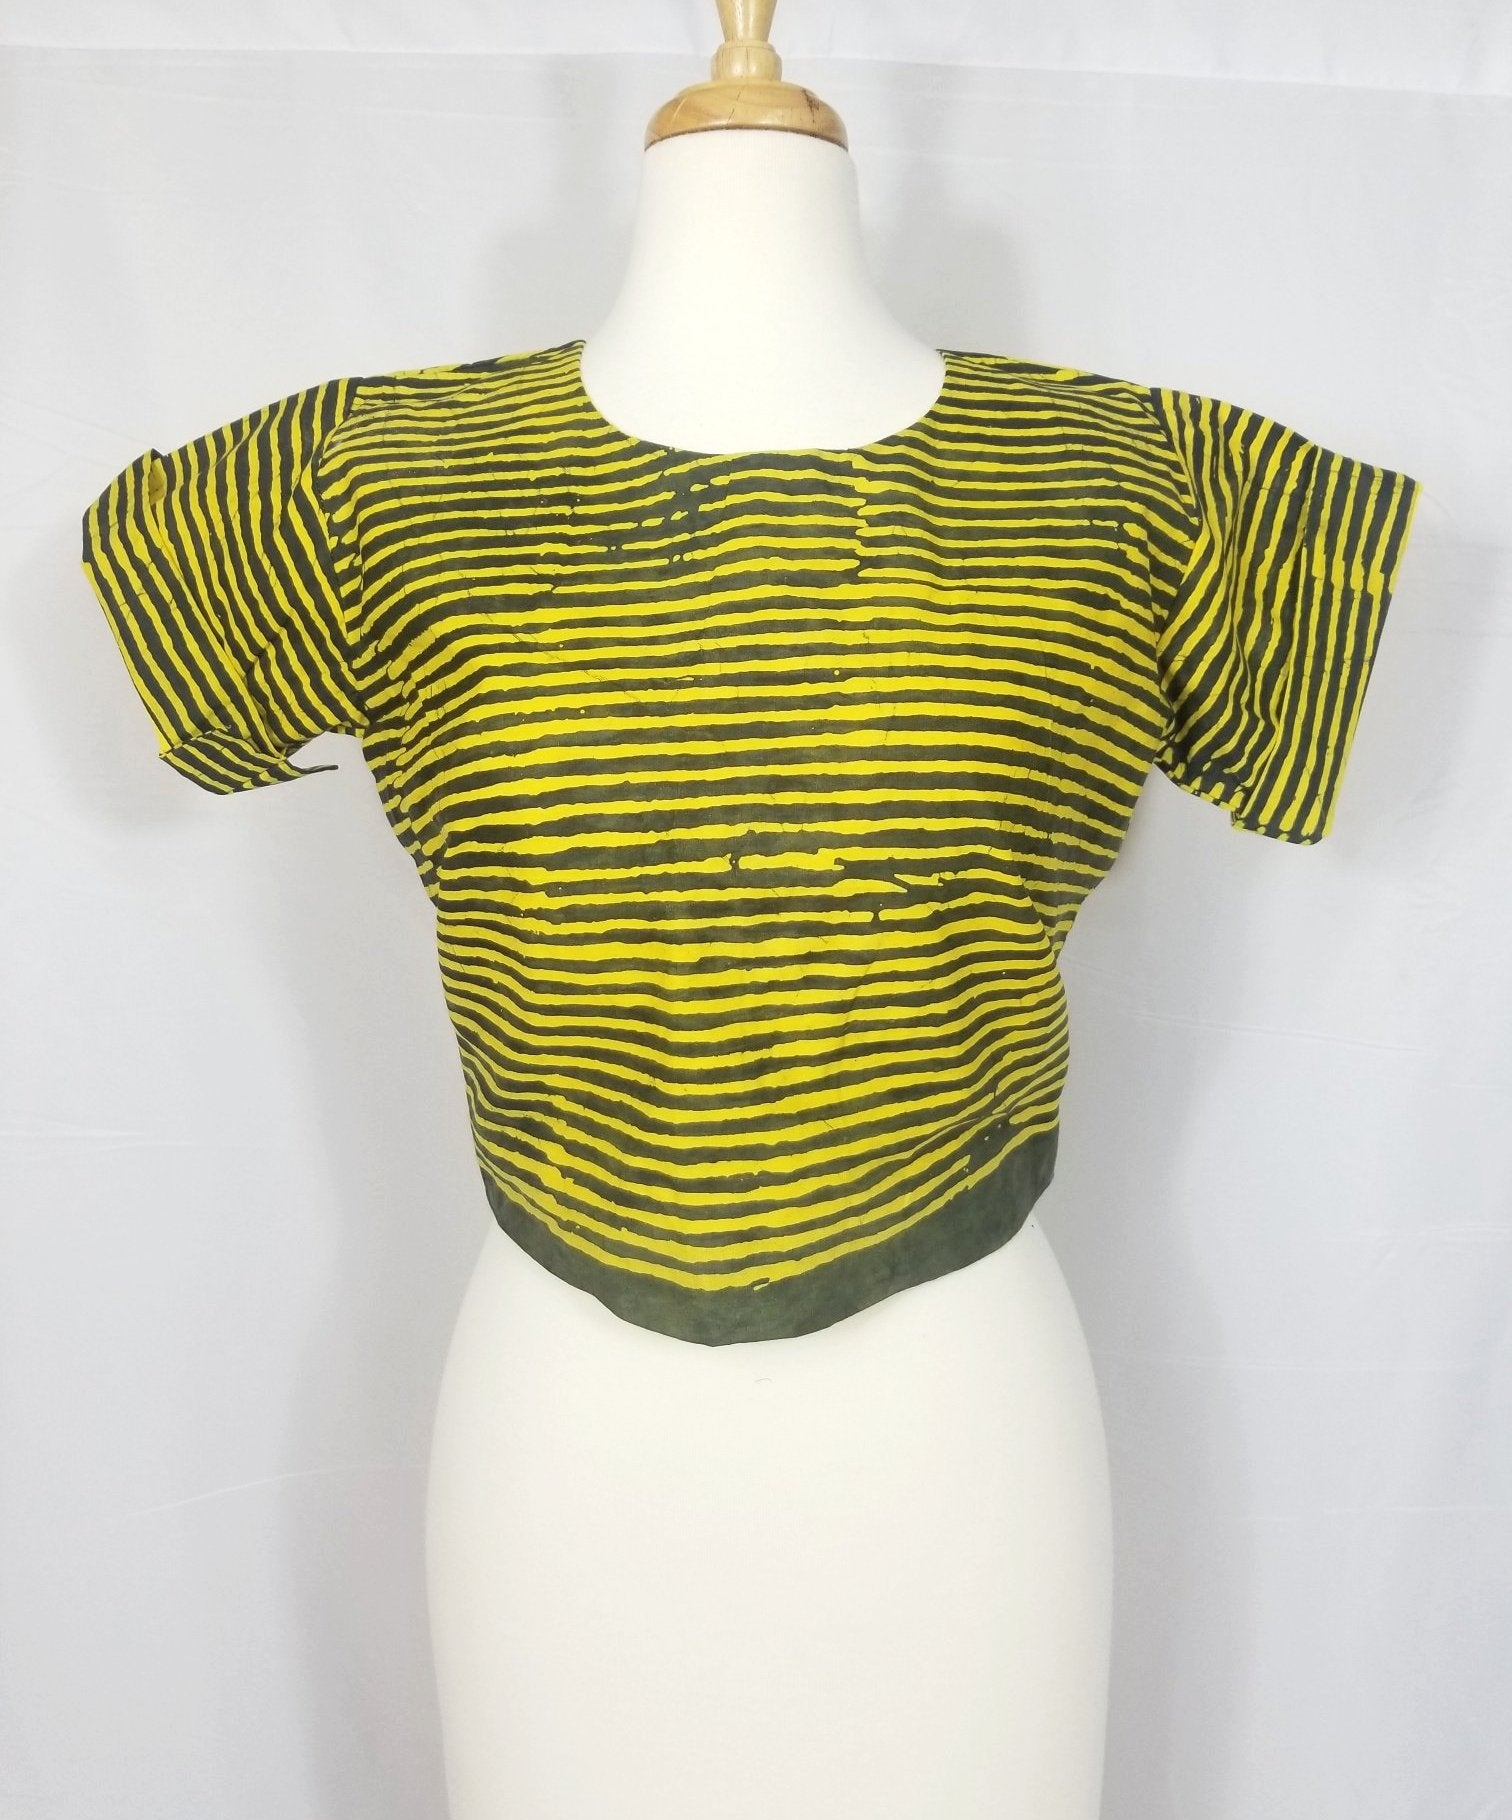 TIA Crop top (Yellow and and army green batik)